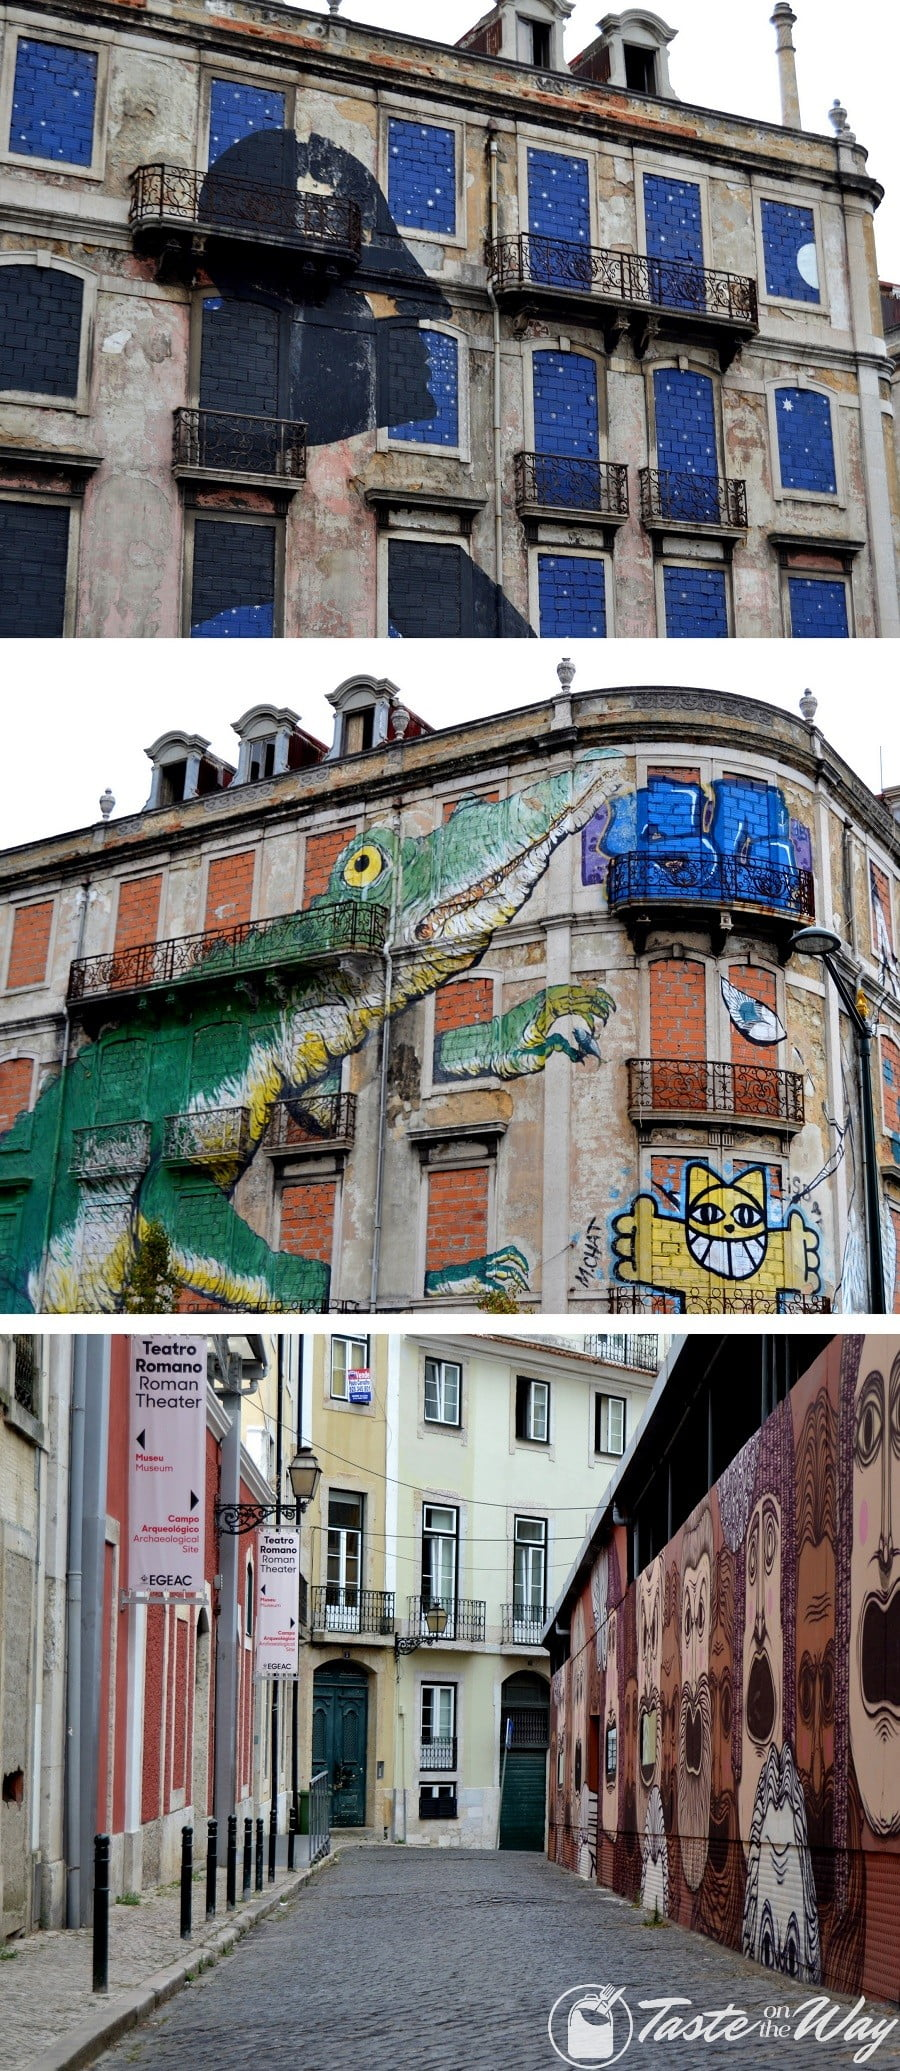 One of the top fun #thingstodo in #Lisbon, #Portugal is find hidden street art. Check out for more! #travel #photography @tasteontheway